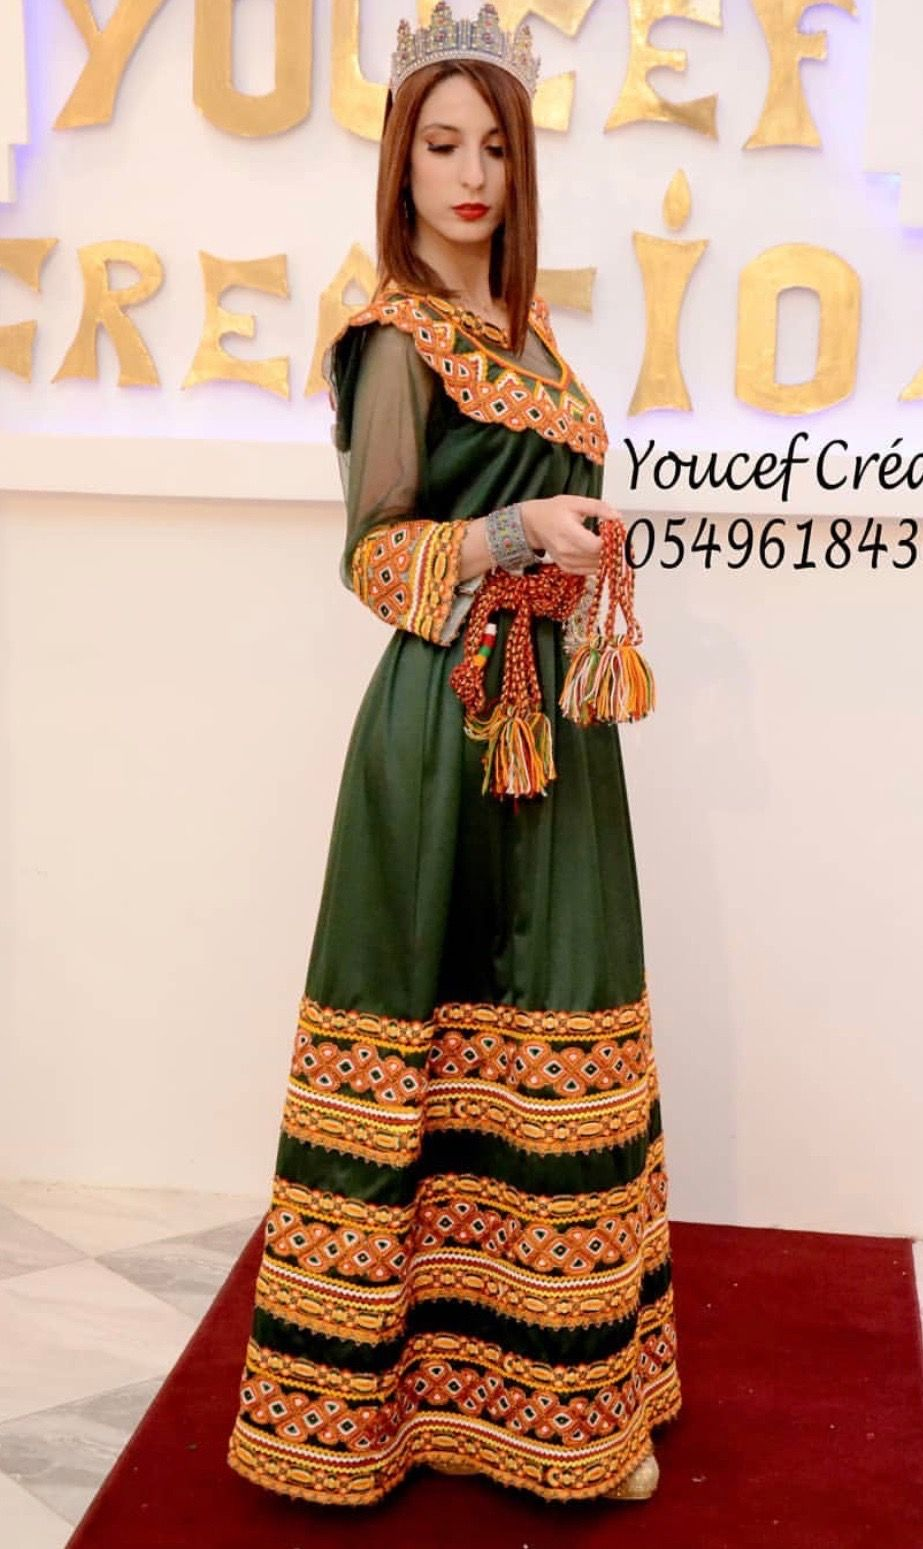 Robe Kabyle Berbere Afghan Fashion Fashion Hijab Fashion